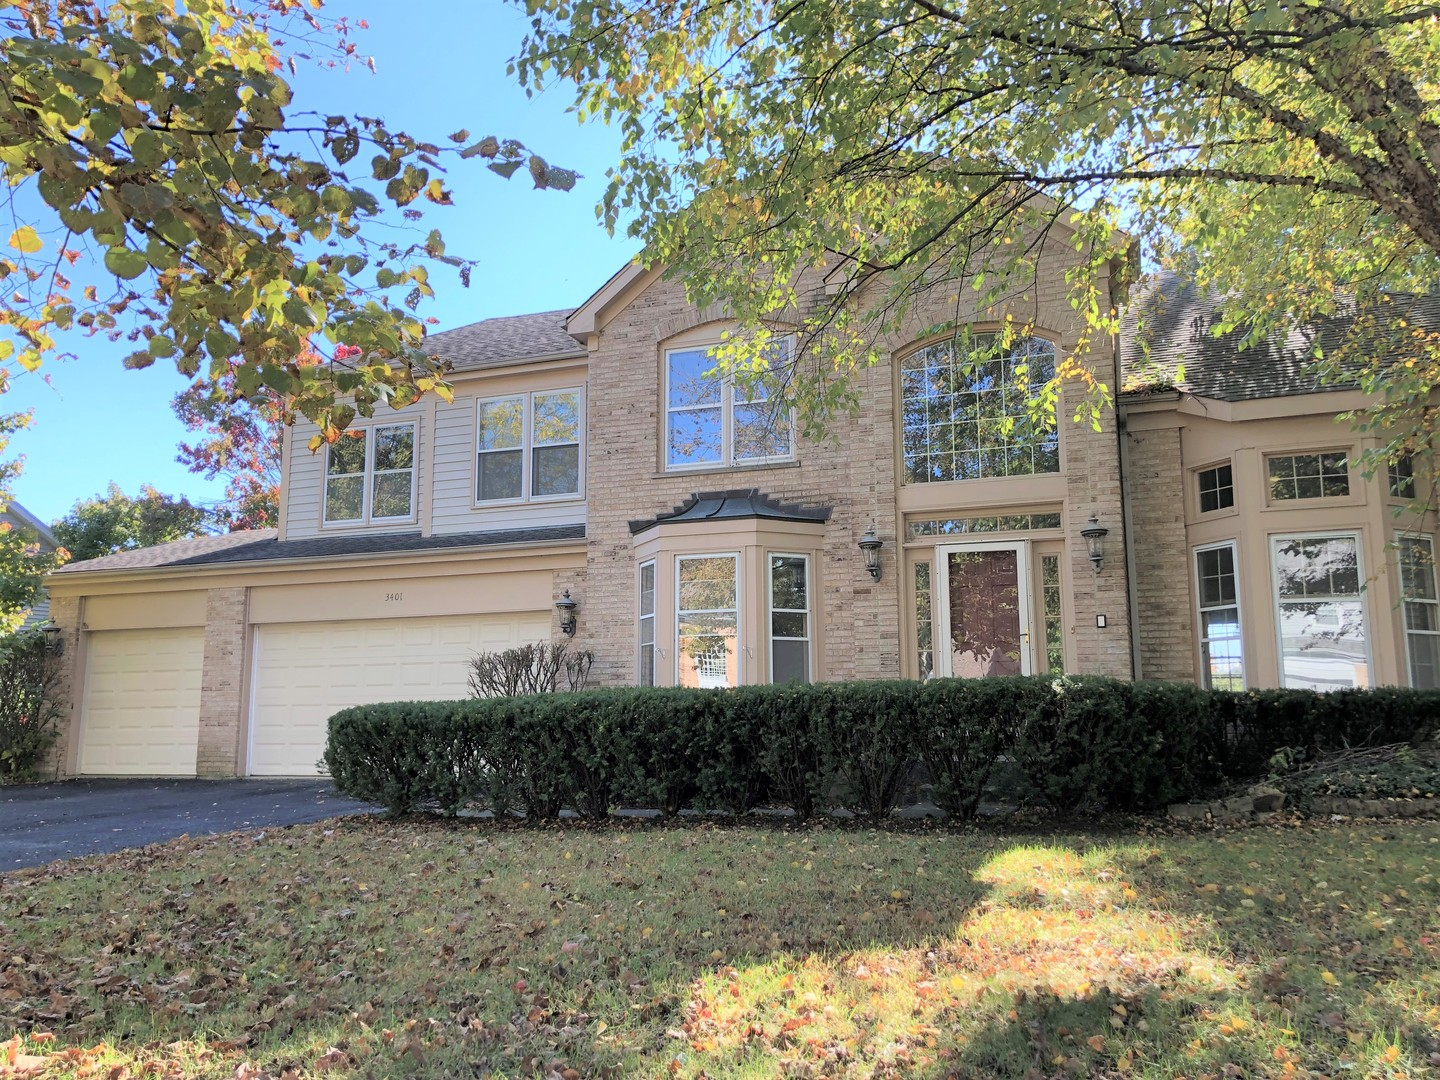 Photo for 3401 Charlemagne Lane, St. Charles, IL 60174 (MLS # 10588348)